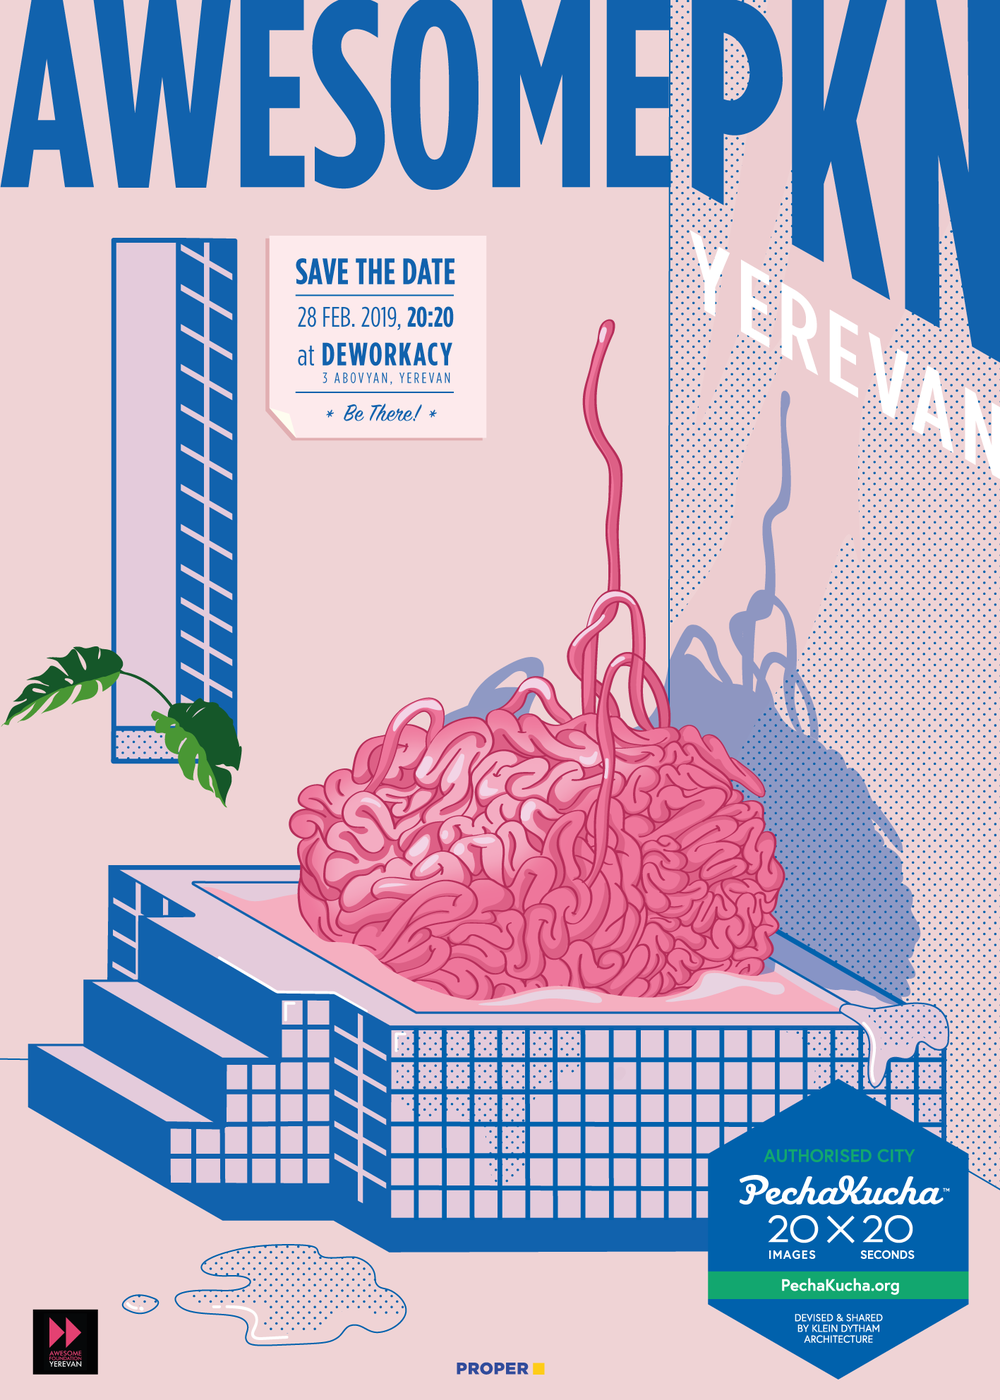 Vol. 28 - Awesome PKN - Inspiring stories from the winners and trustees of Awesome Foundation Yerevan on how awesome ideas are shaped and delivered.Poster by Diana Kupalyan / Proper